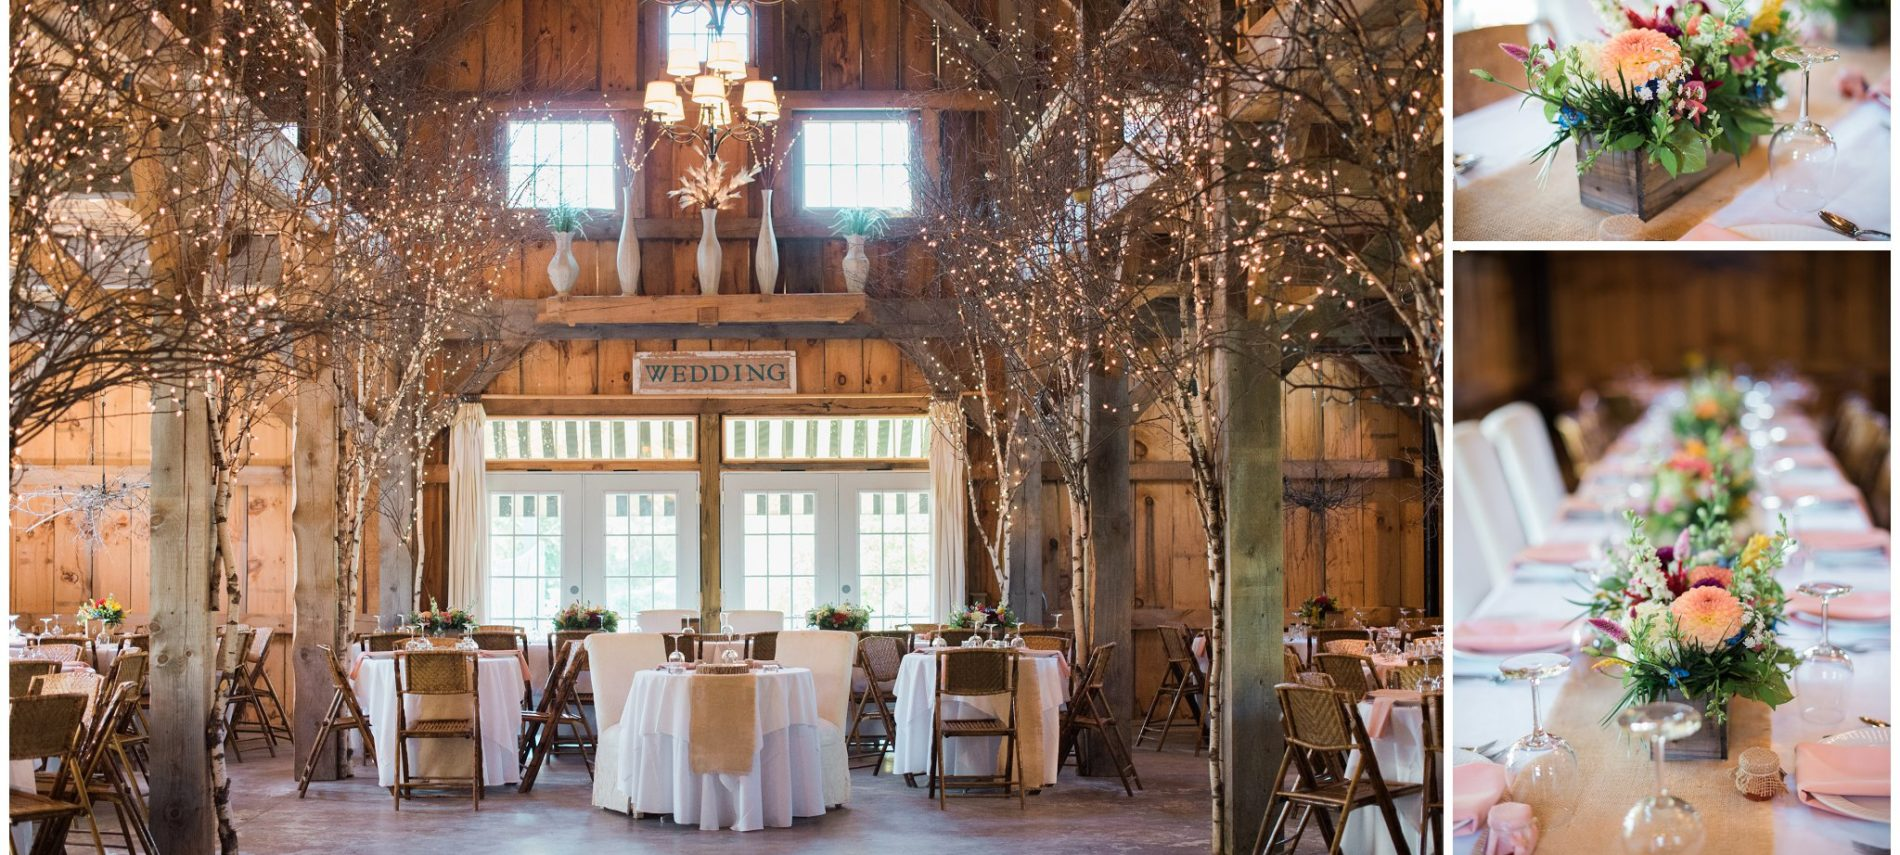 Alerin Barn Vermont Wedding Venue